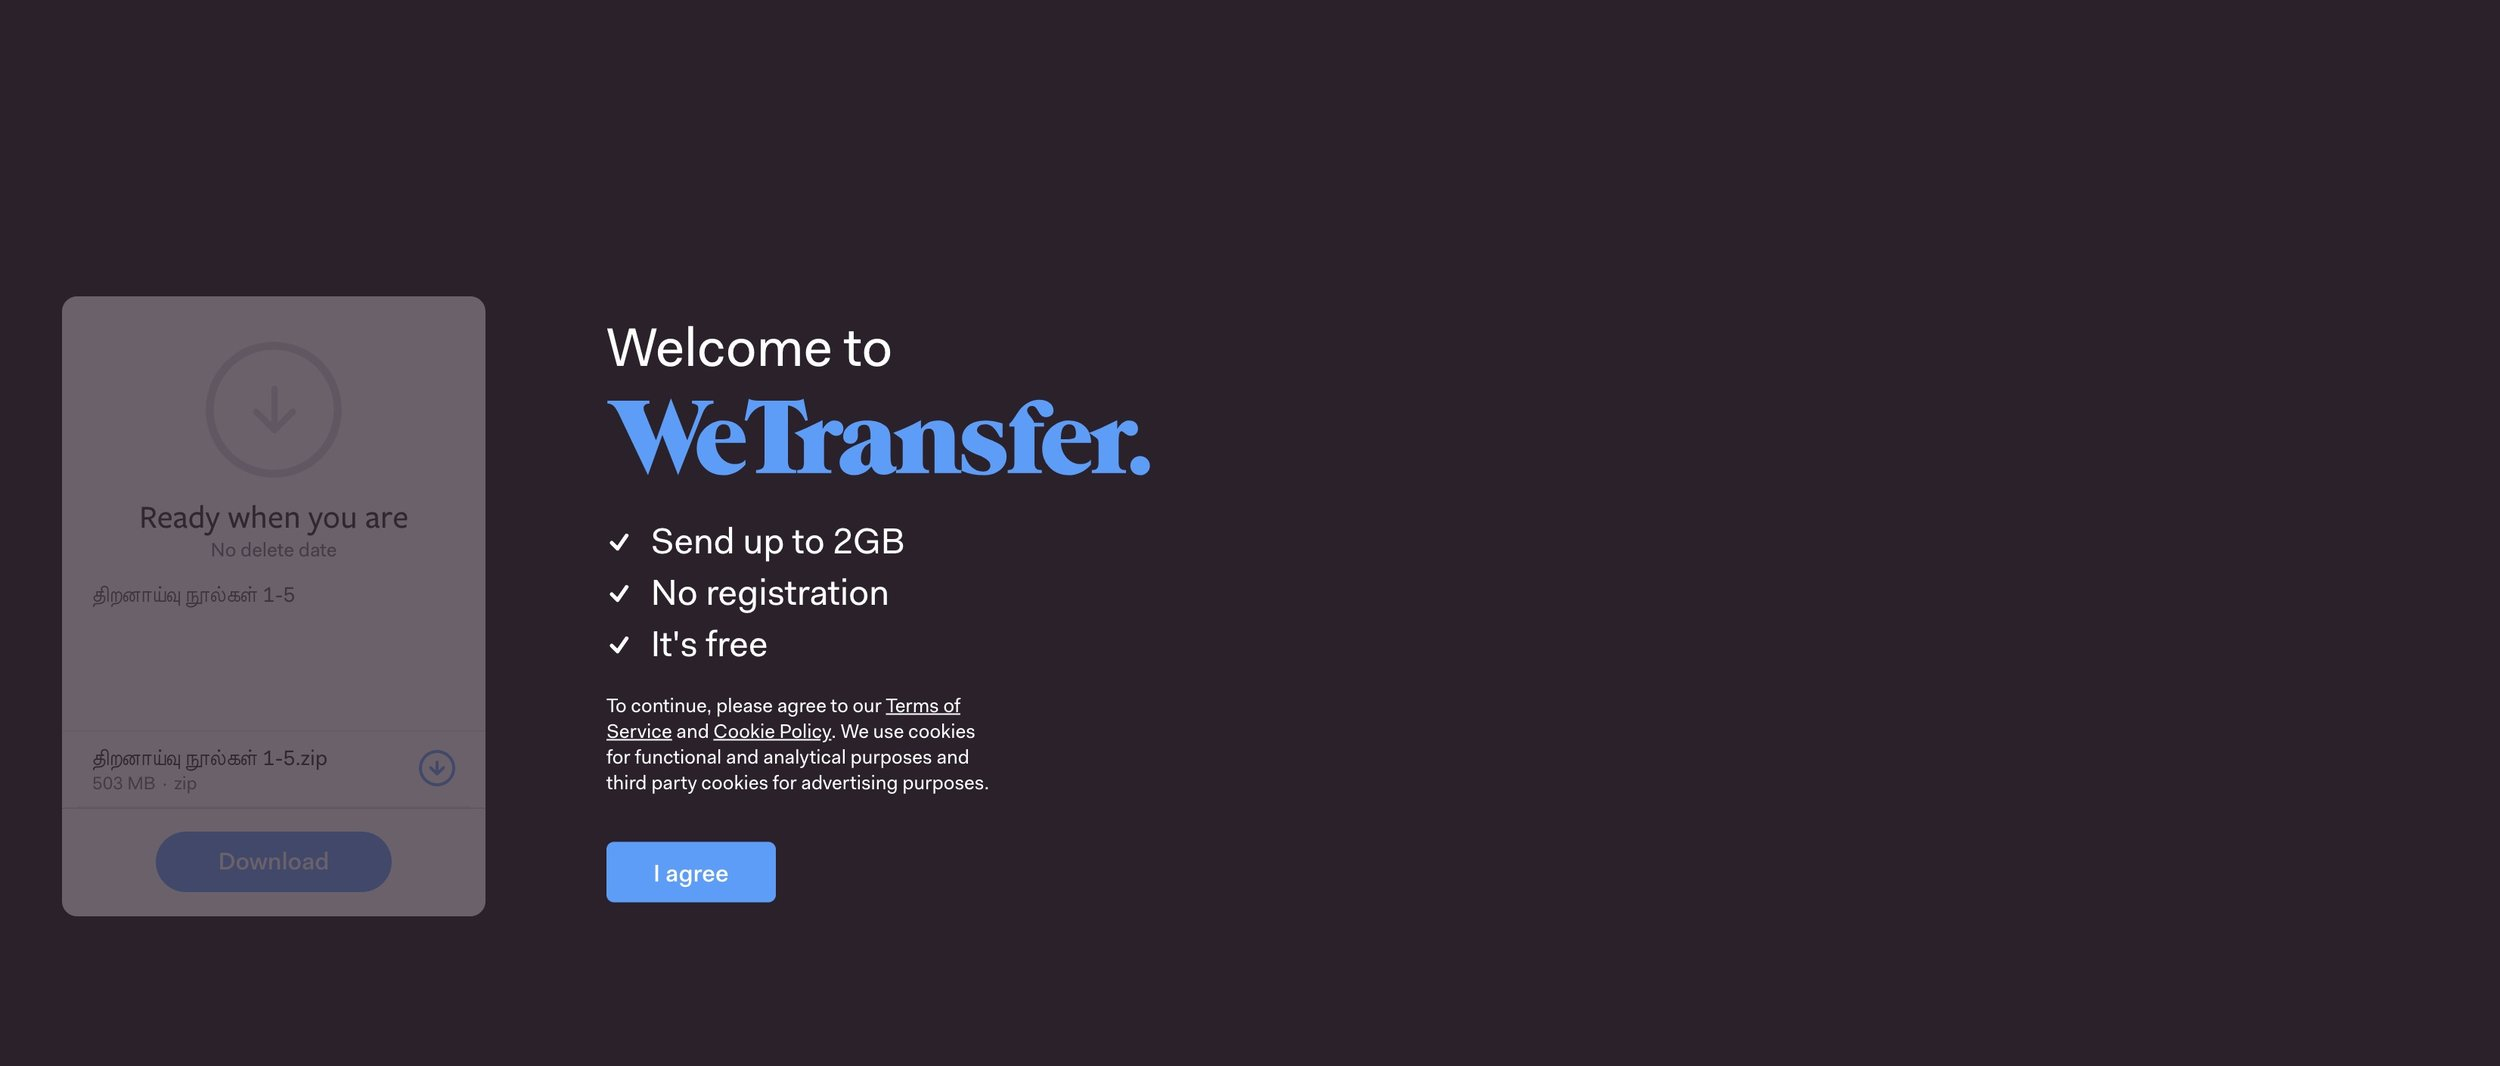 Reference picture of wetransfer page.